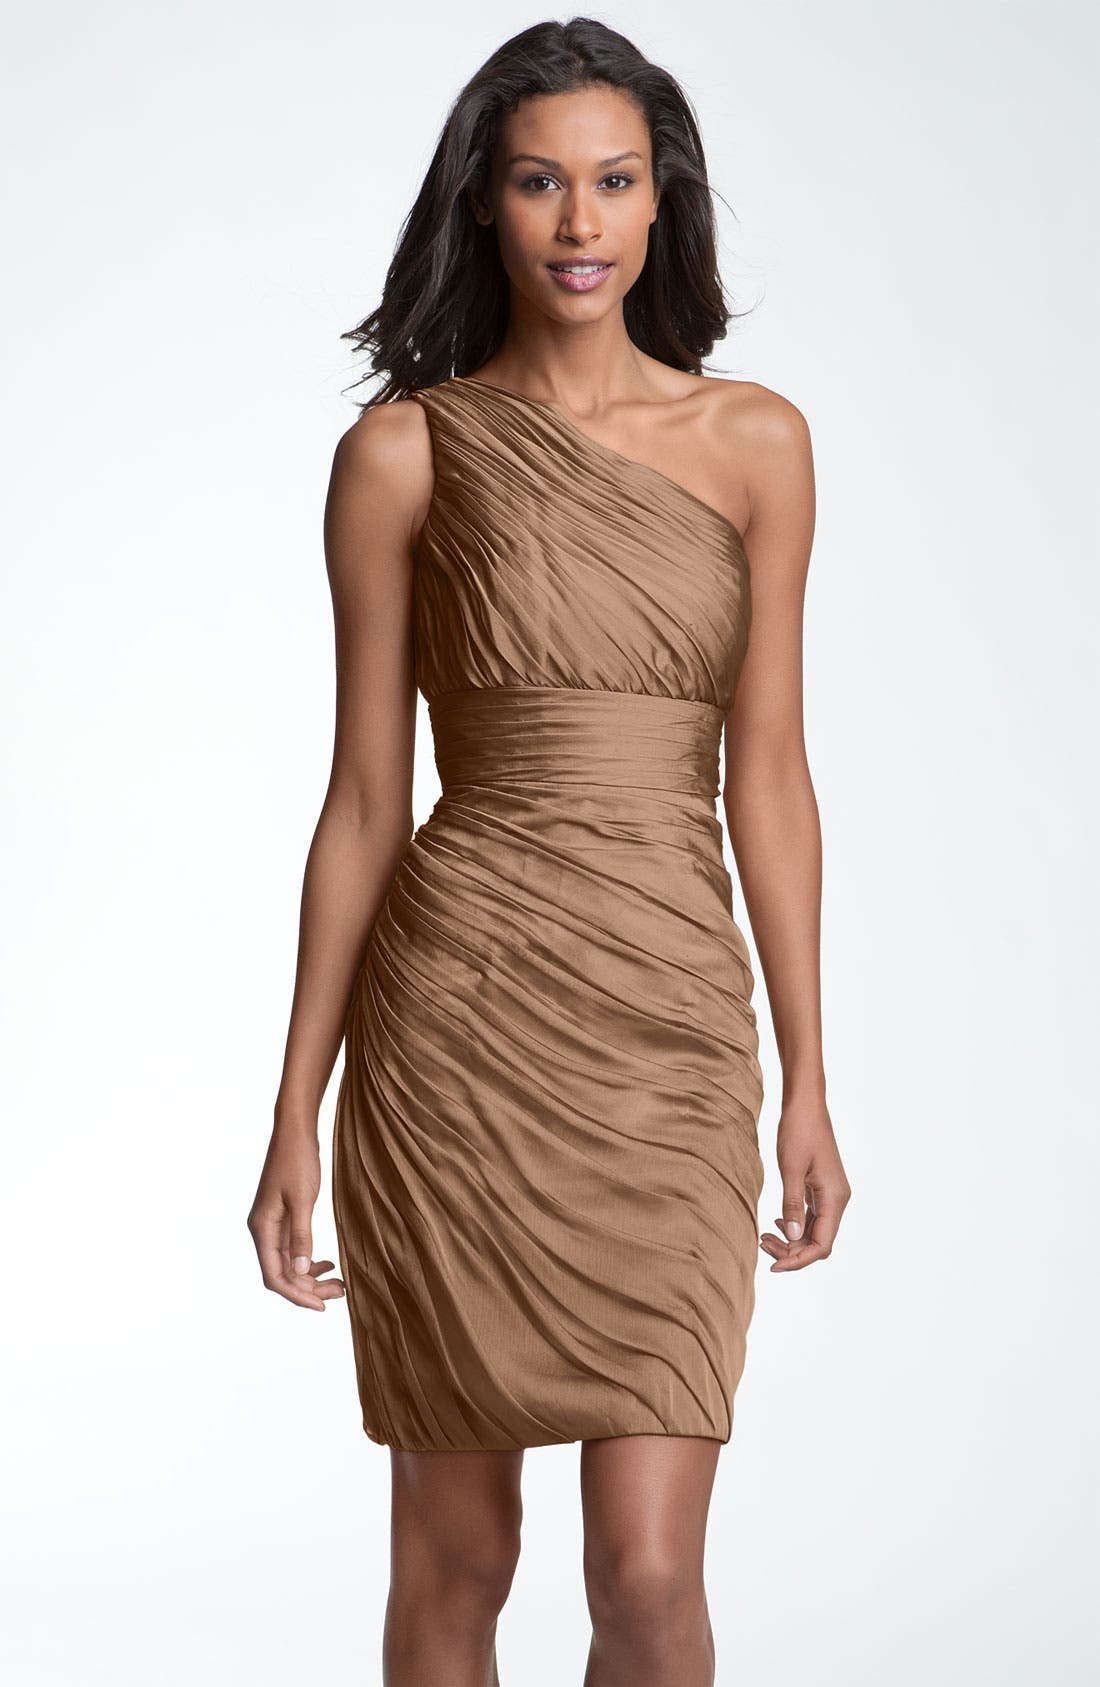 Alternate Image 1 Selected - ML Monique Lhuillier Bridesmaids Ruched One-Shoulder Chiffon Sheath Dress (Nordstrom Exclusive)